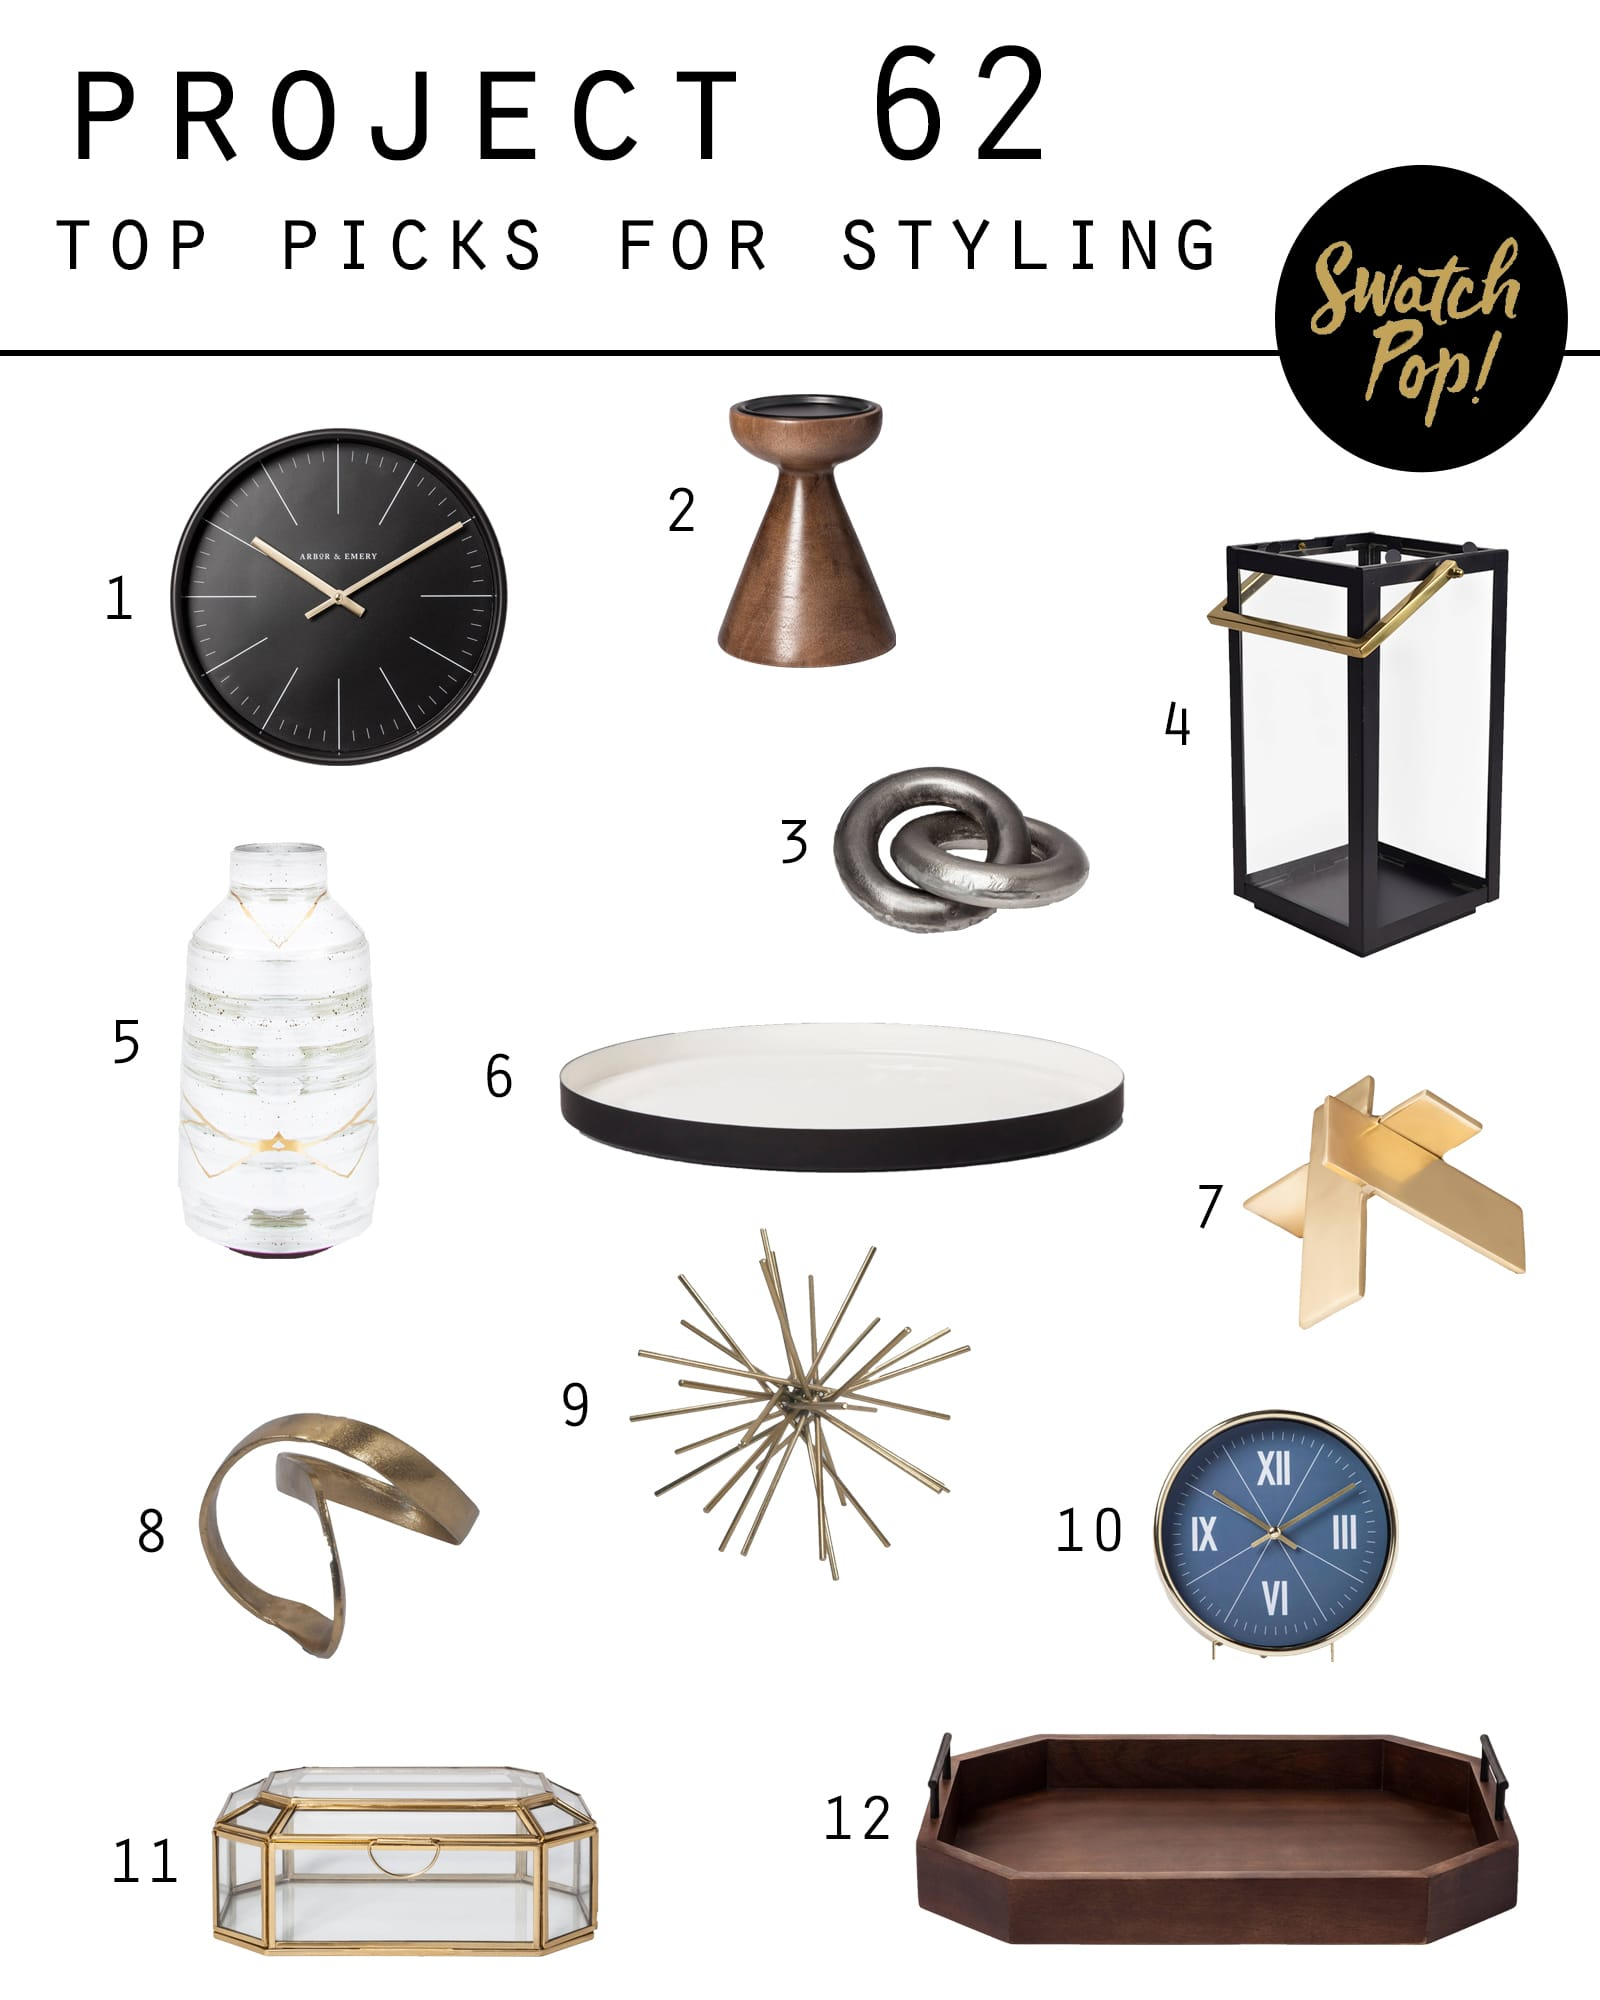 Project 62 Top Picks for Styling